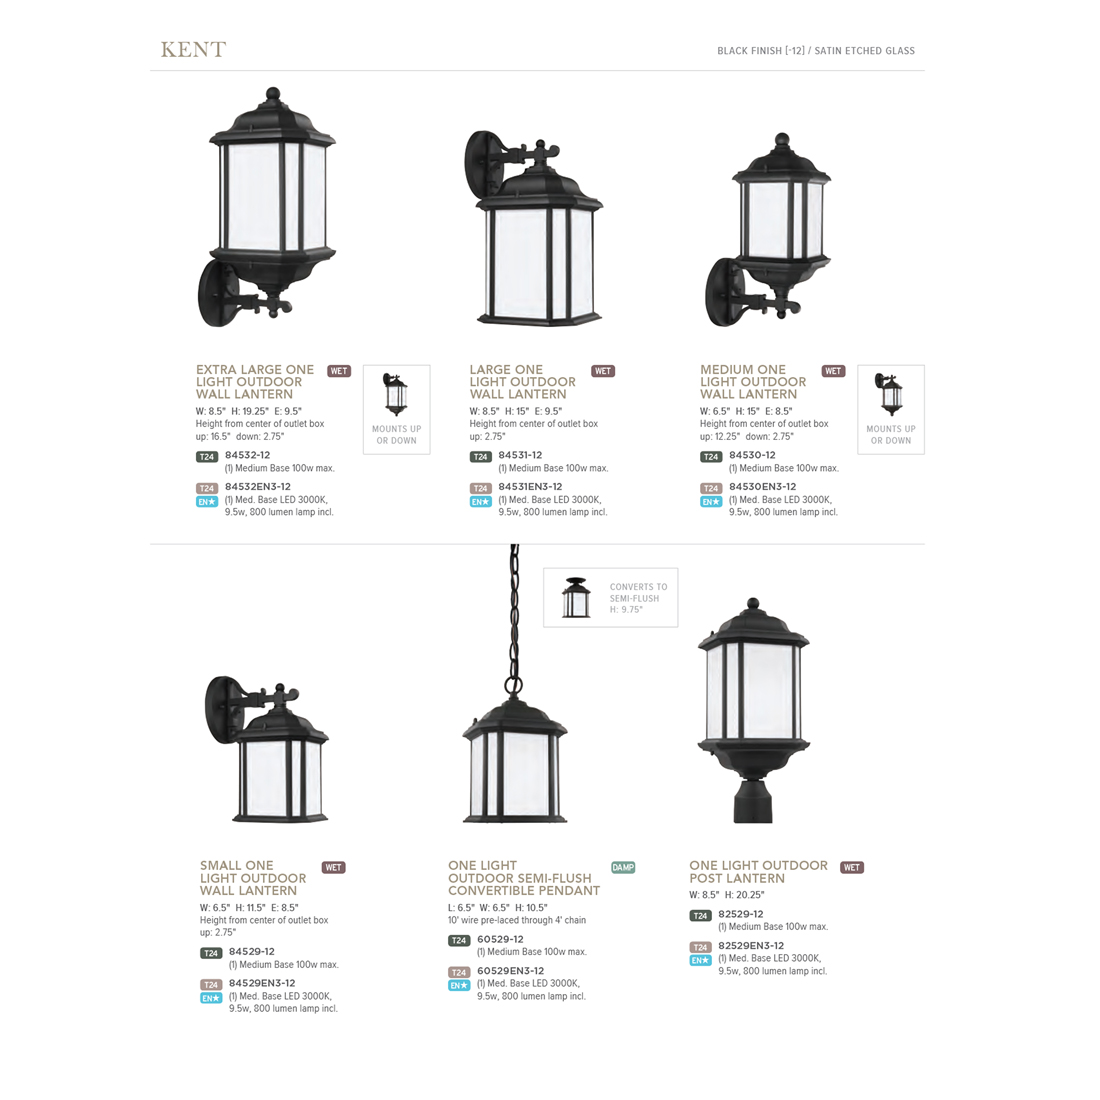 Sea Gull Lighting Kent 1 Light Outdoor Black Post Light With Led Bulb En3 12